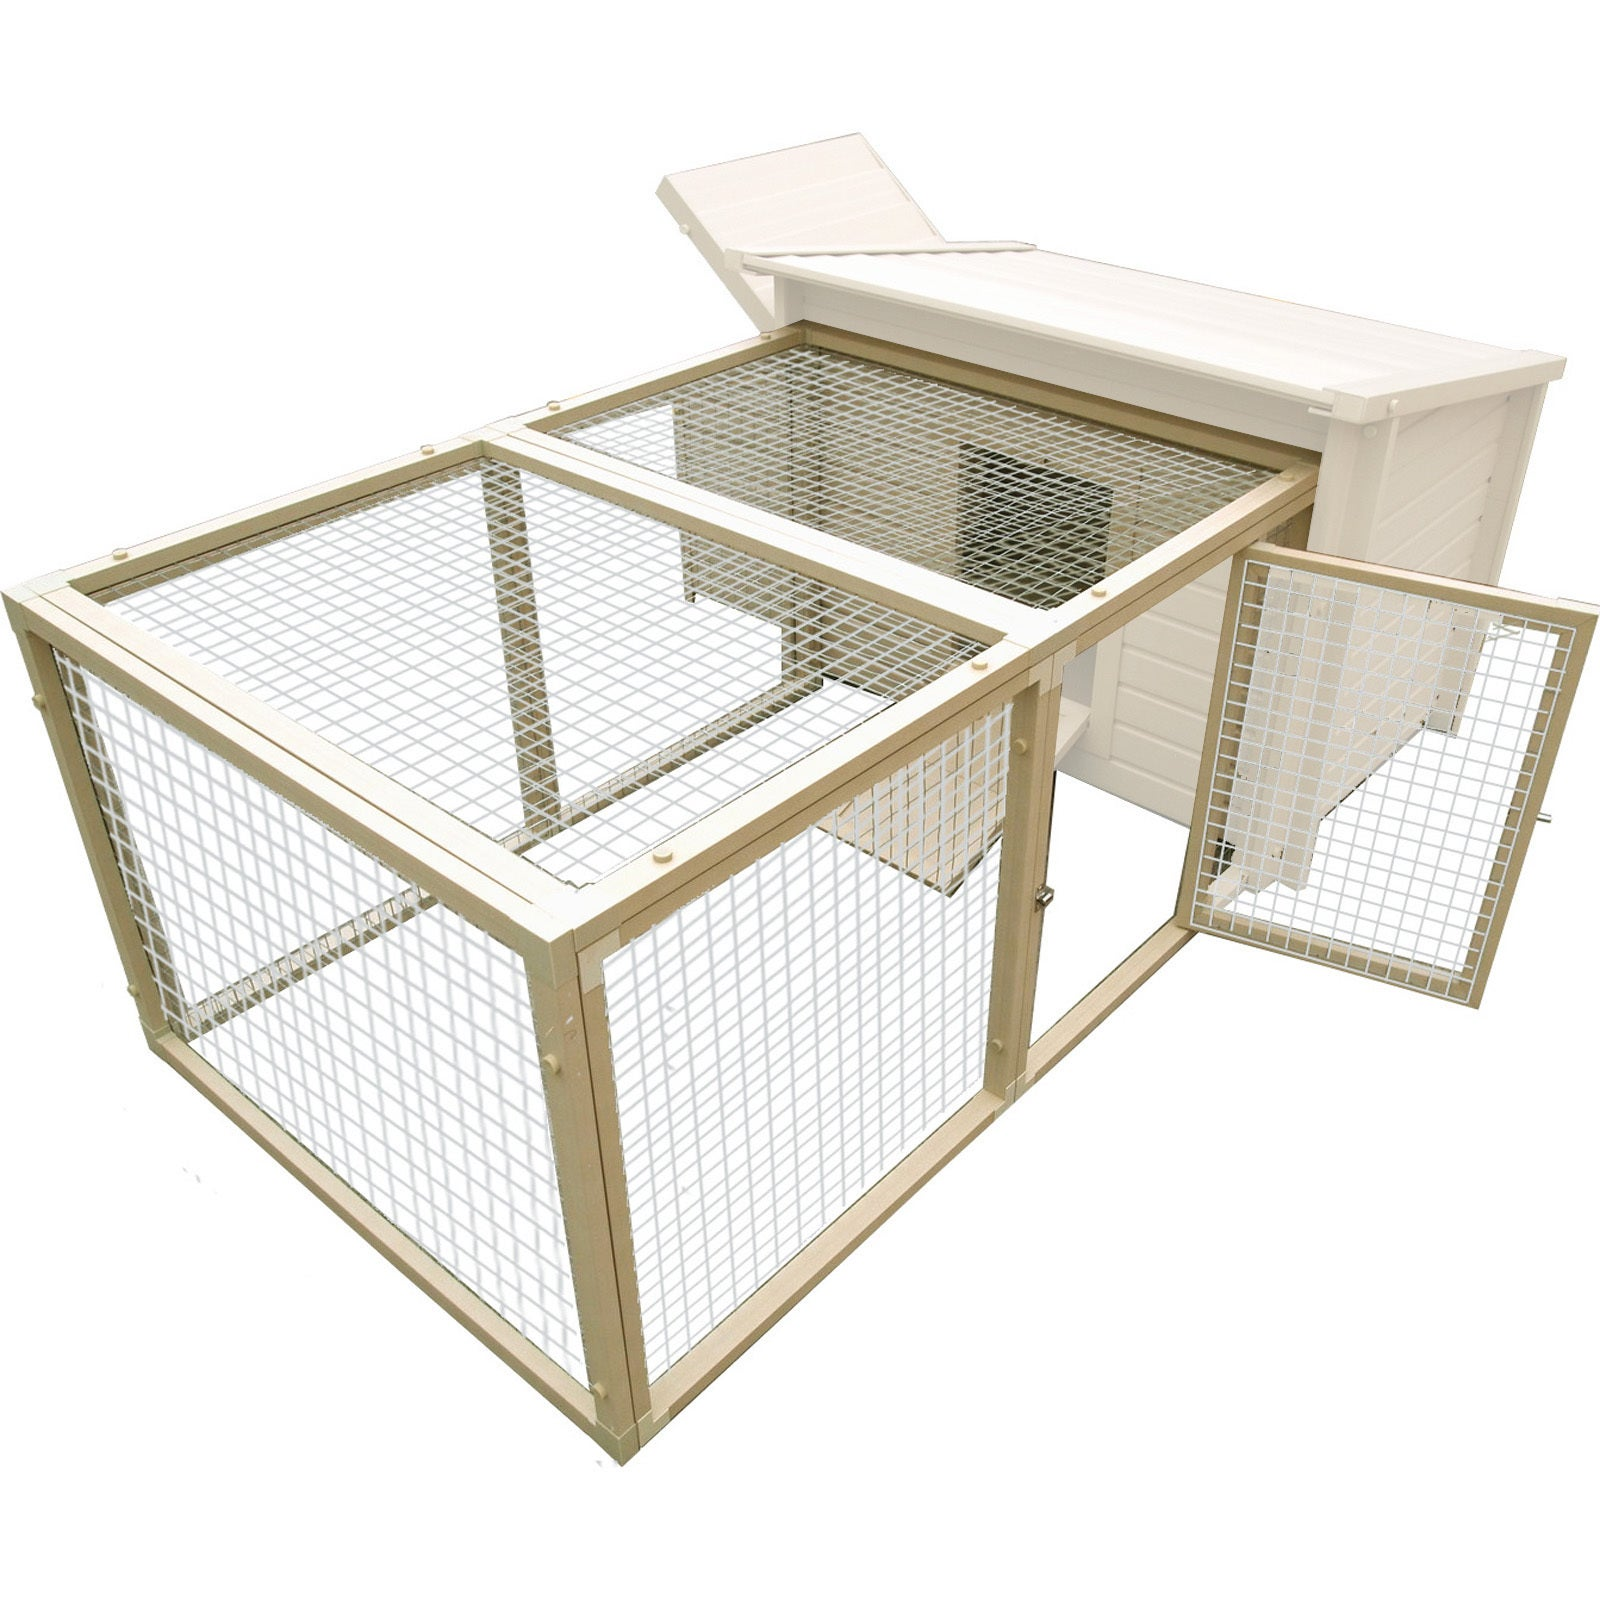 New Age Pet Fontana Chicken Pen with Stainless Steel (Sil...